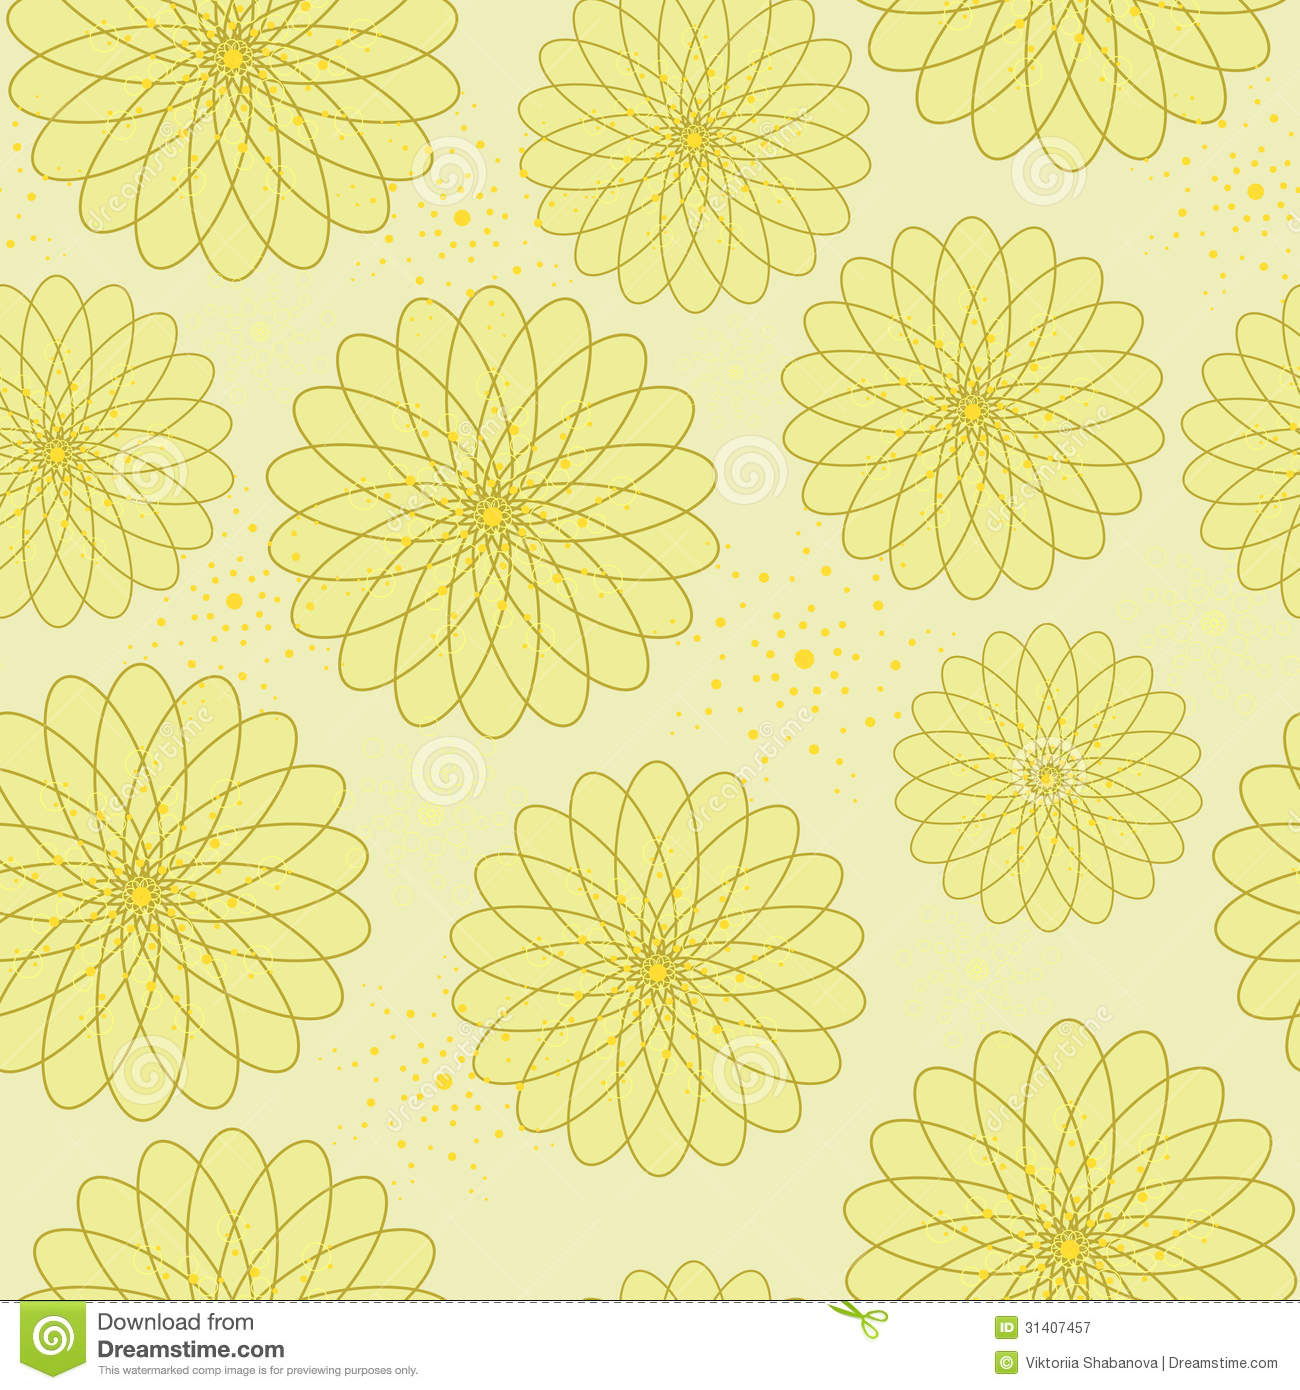 decorative printable paper - Decorative Paper